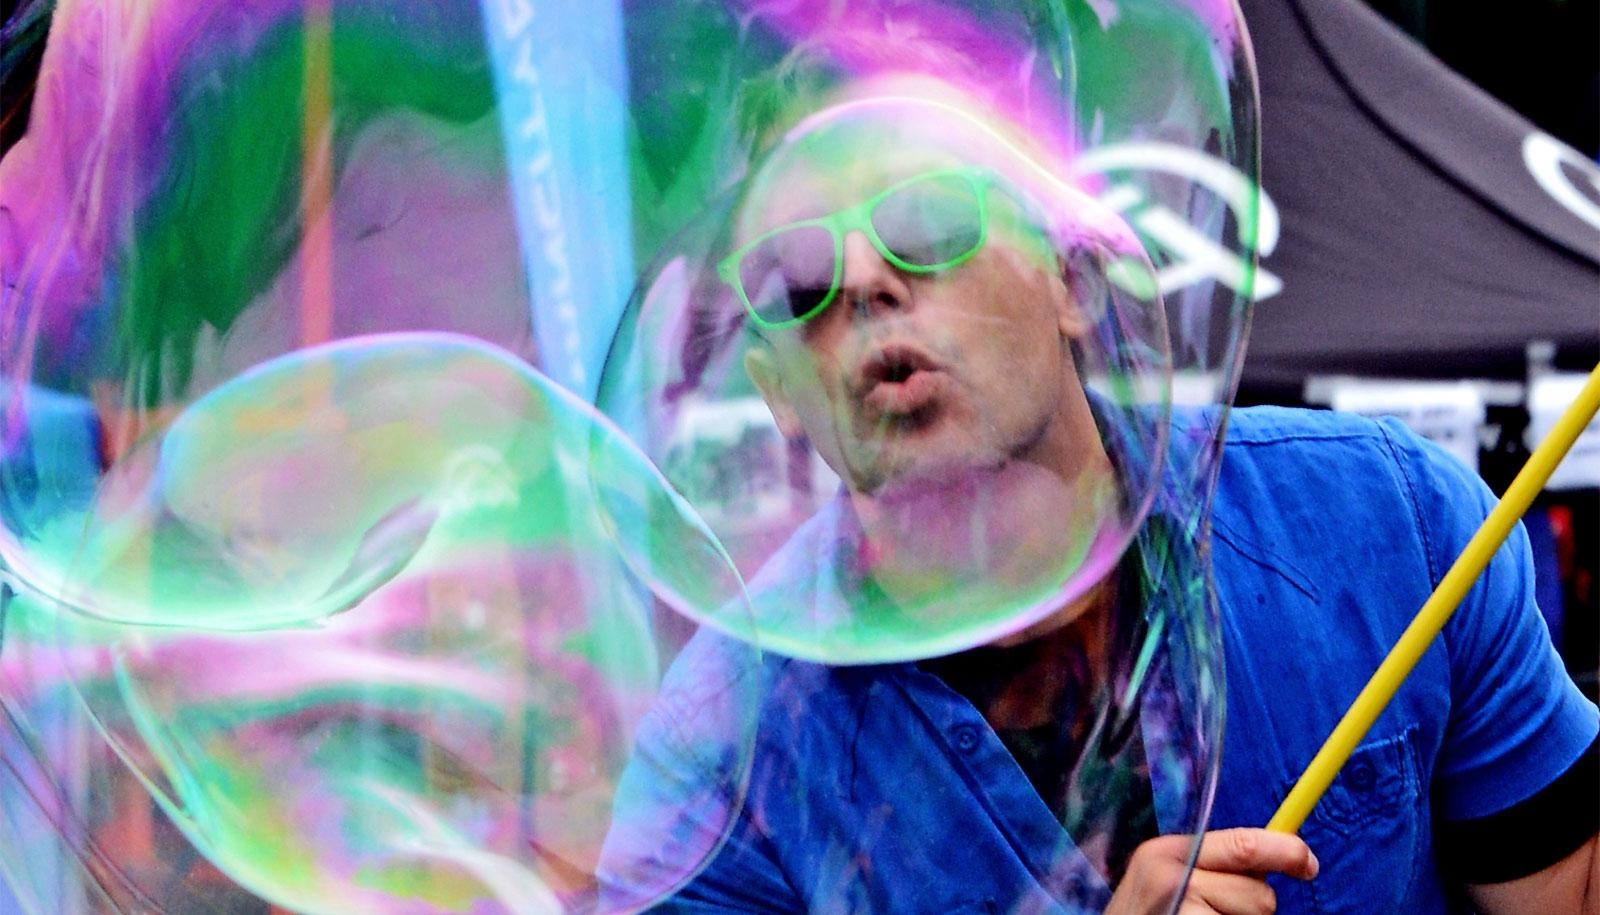 A man wearing a blue shirt and green sunglasses creating a giant soap bubble blows into the bubble